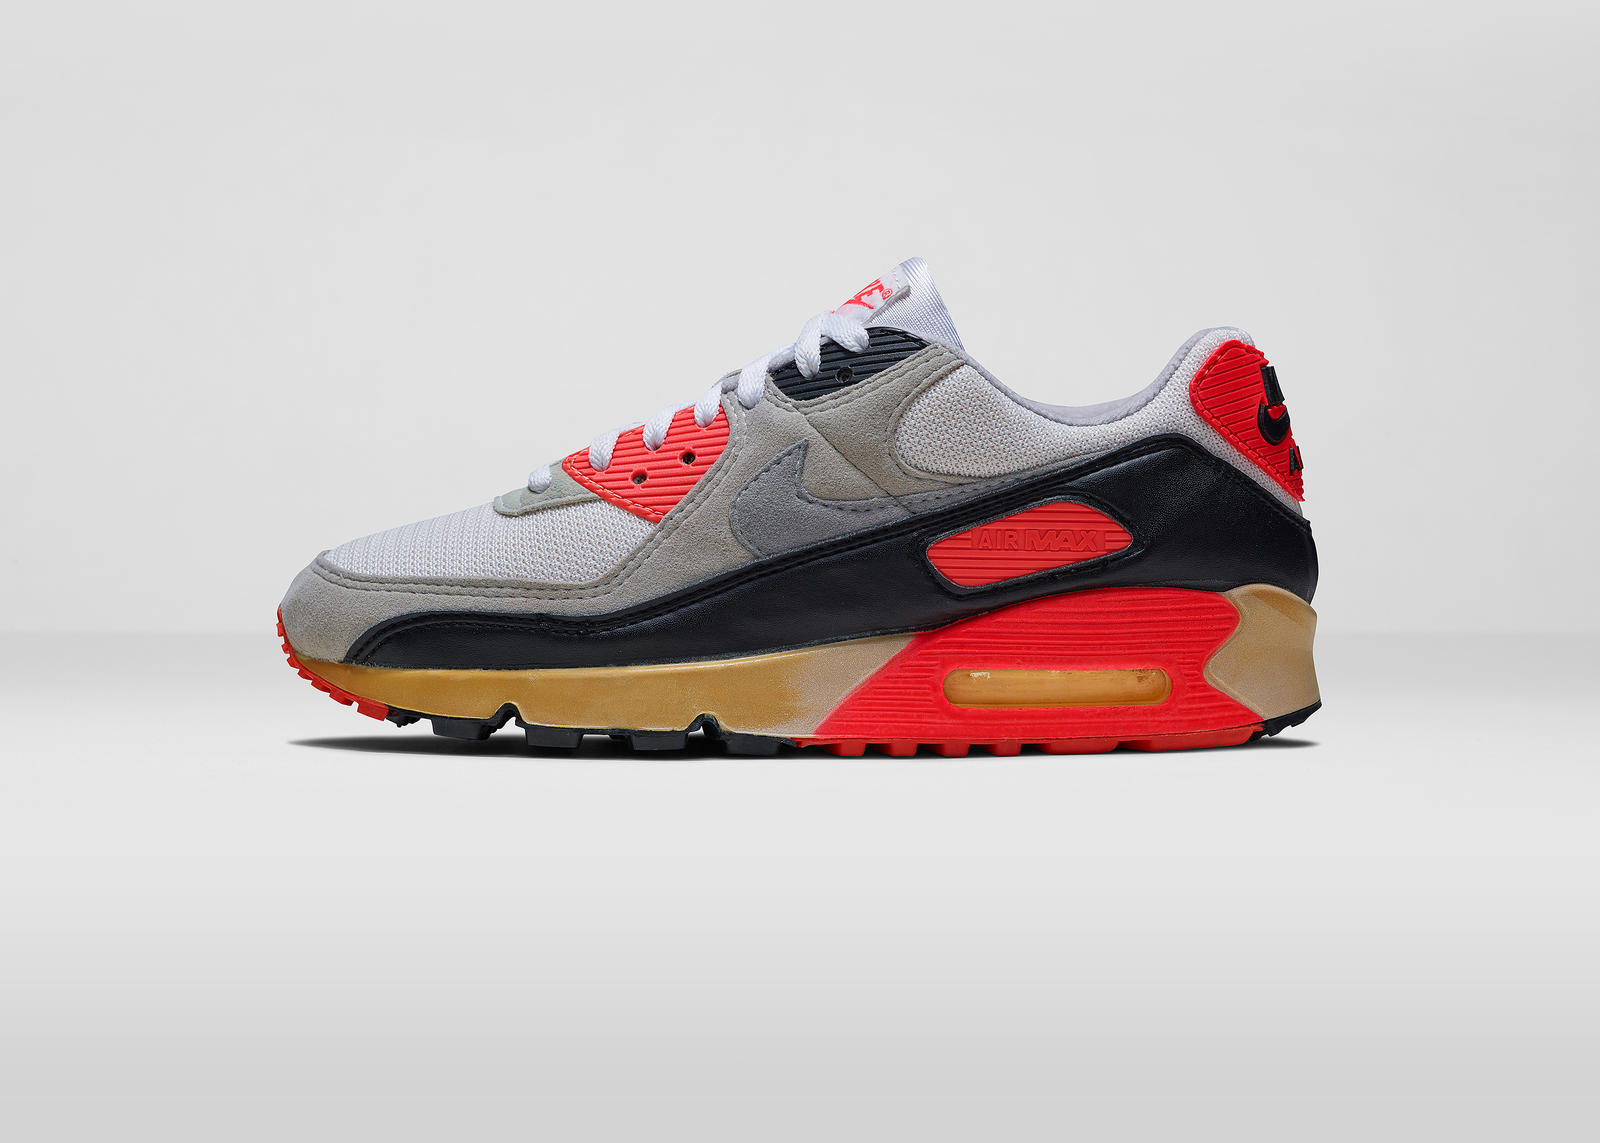 Nike Nike Air Air Max Archives Max Max Archives Air Nike News Archives News g6I7vbfYy